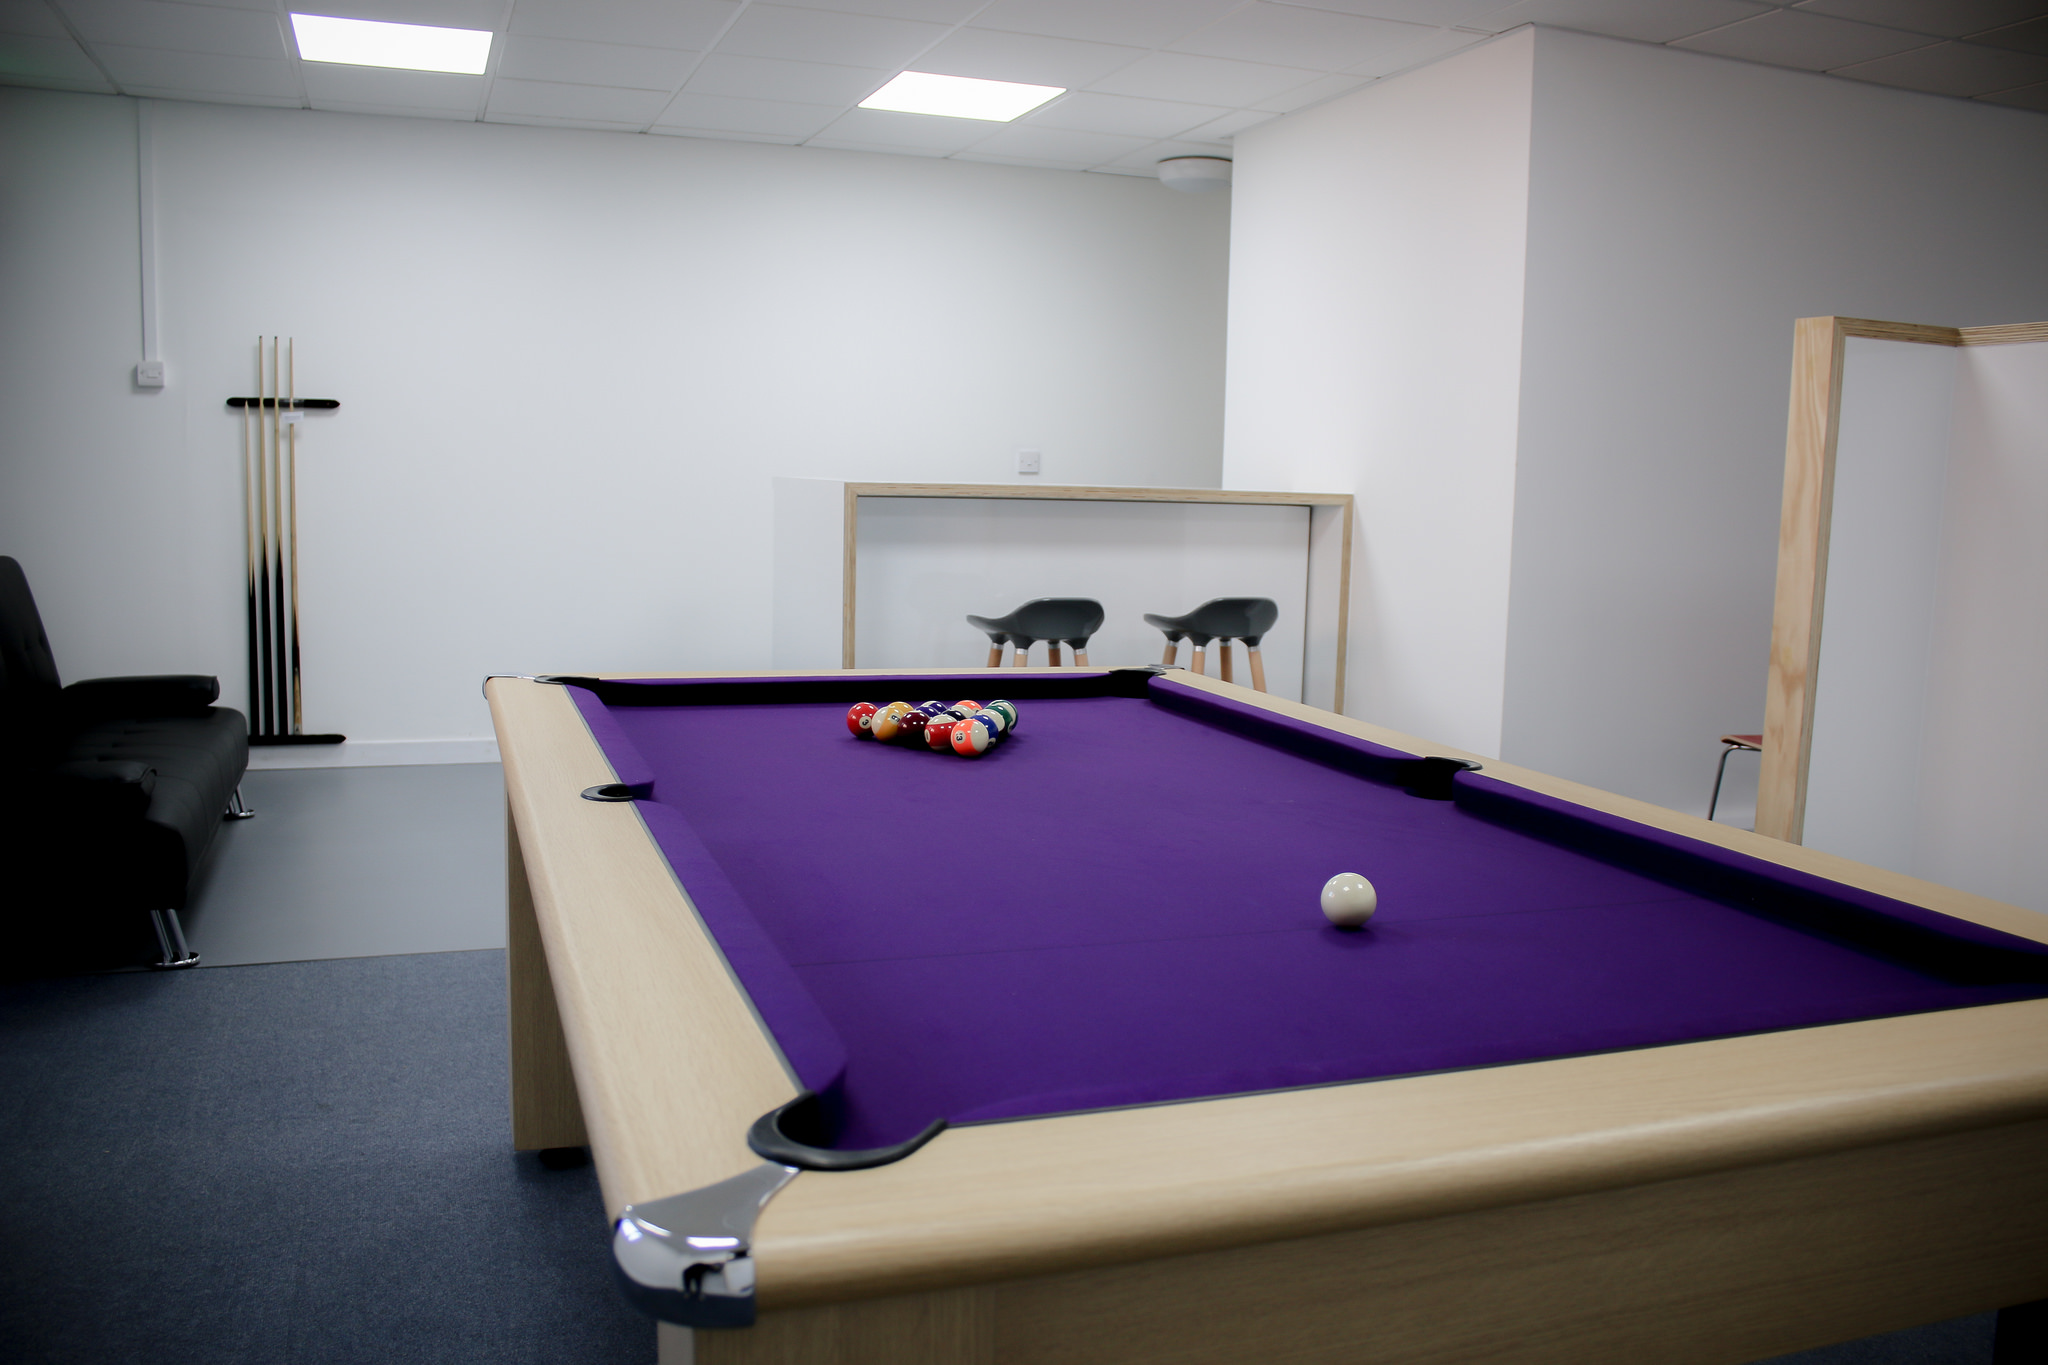 Aldrock's pool table